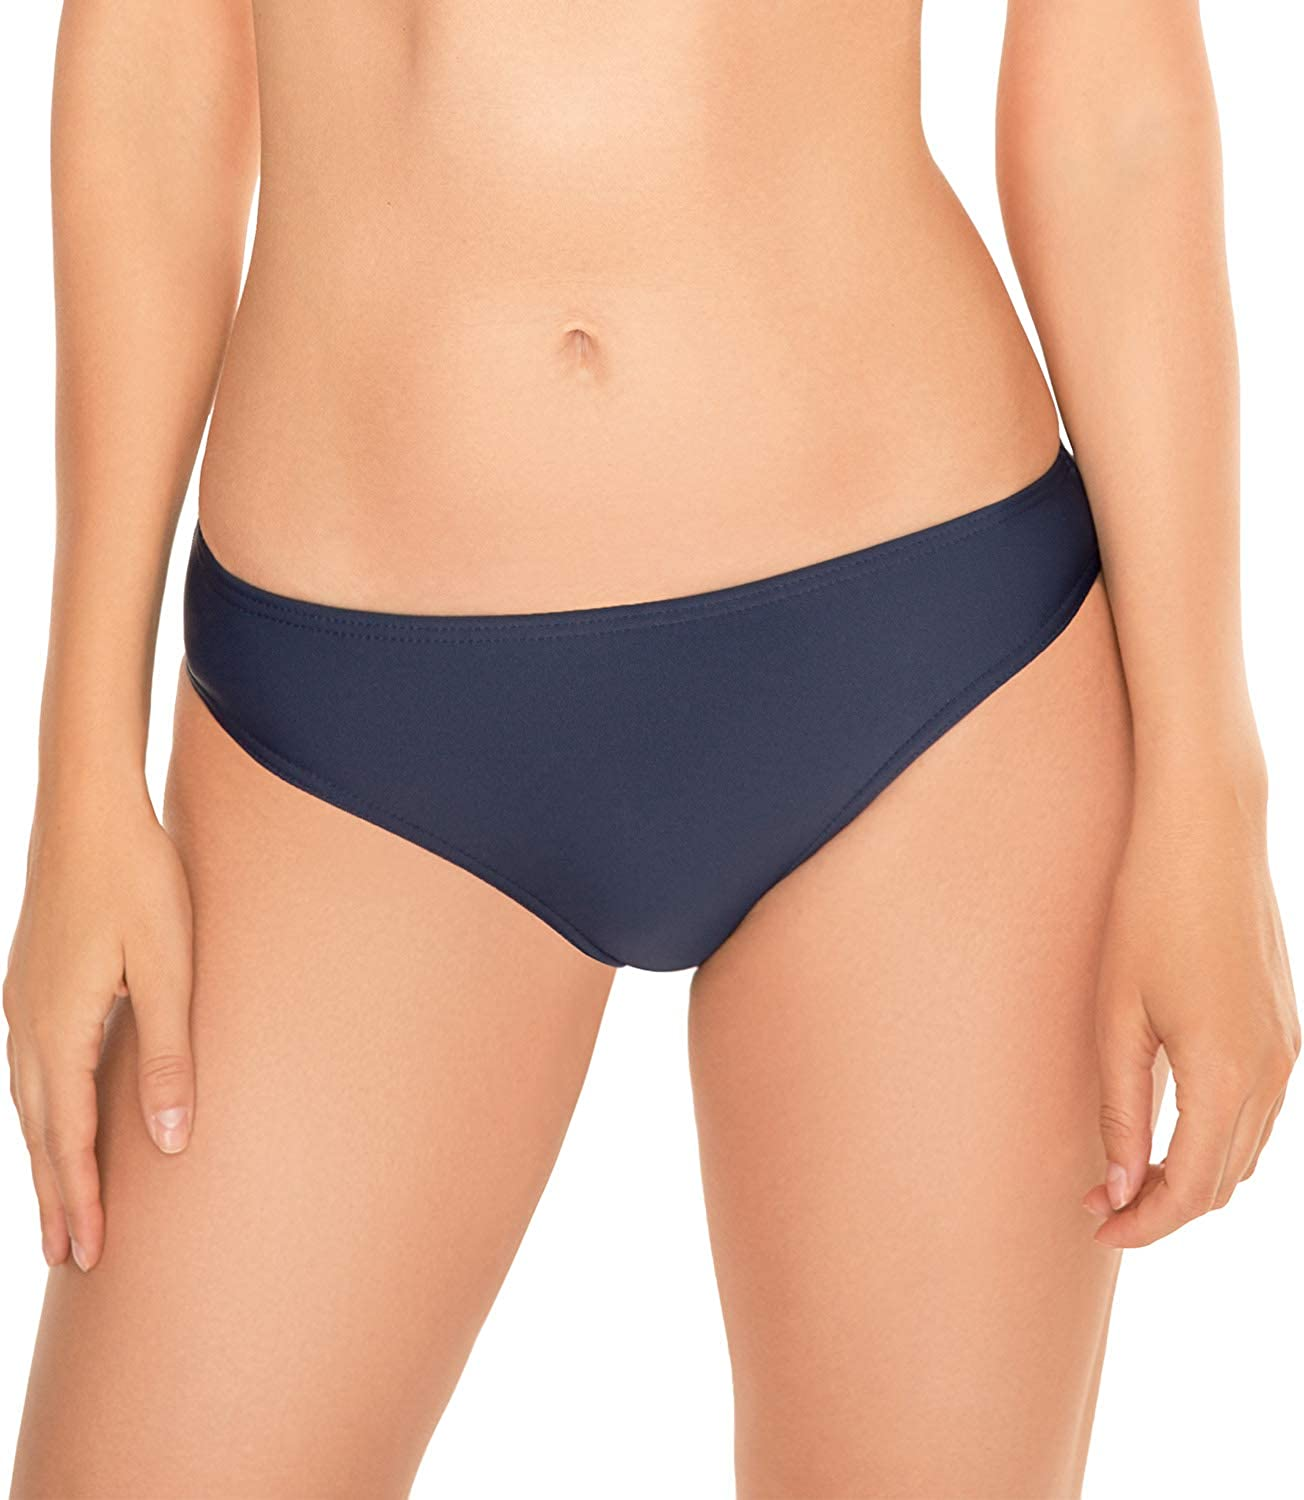 Made in EU Vivisence 3000 Womens Bikini Briefs Smooth Matching Top Available